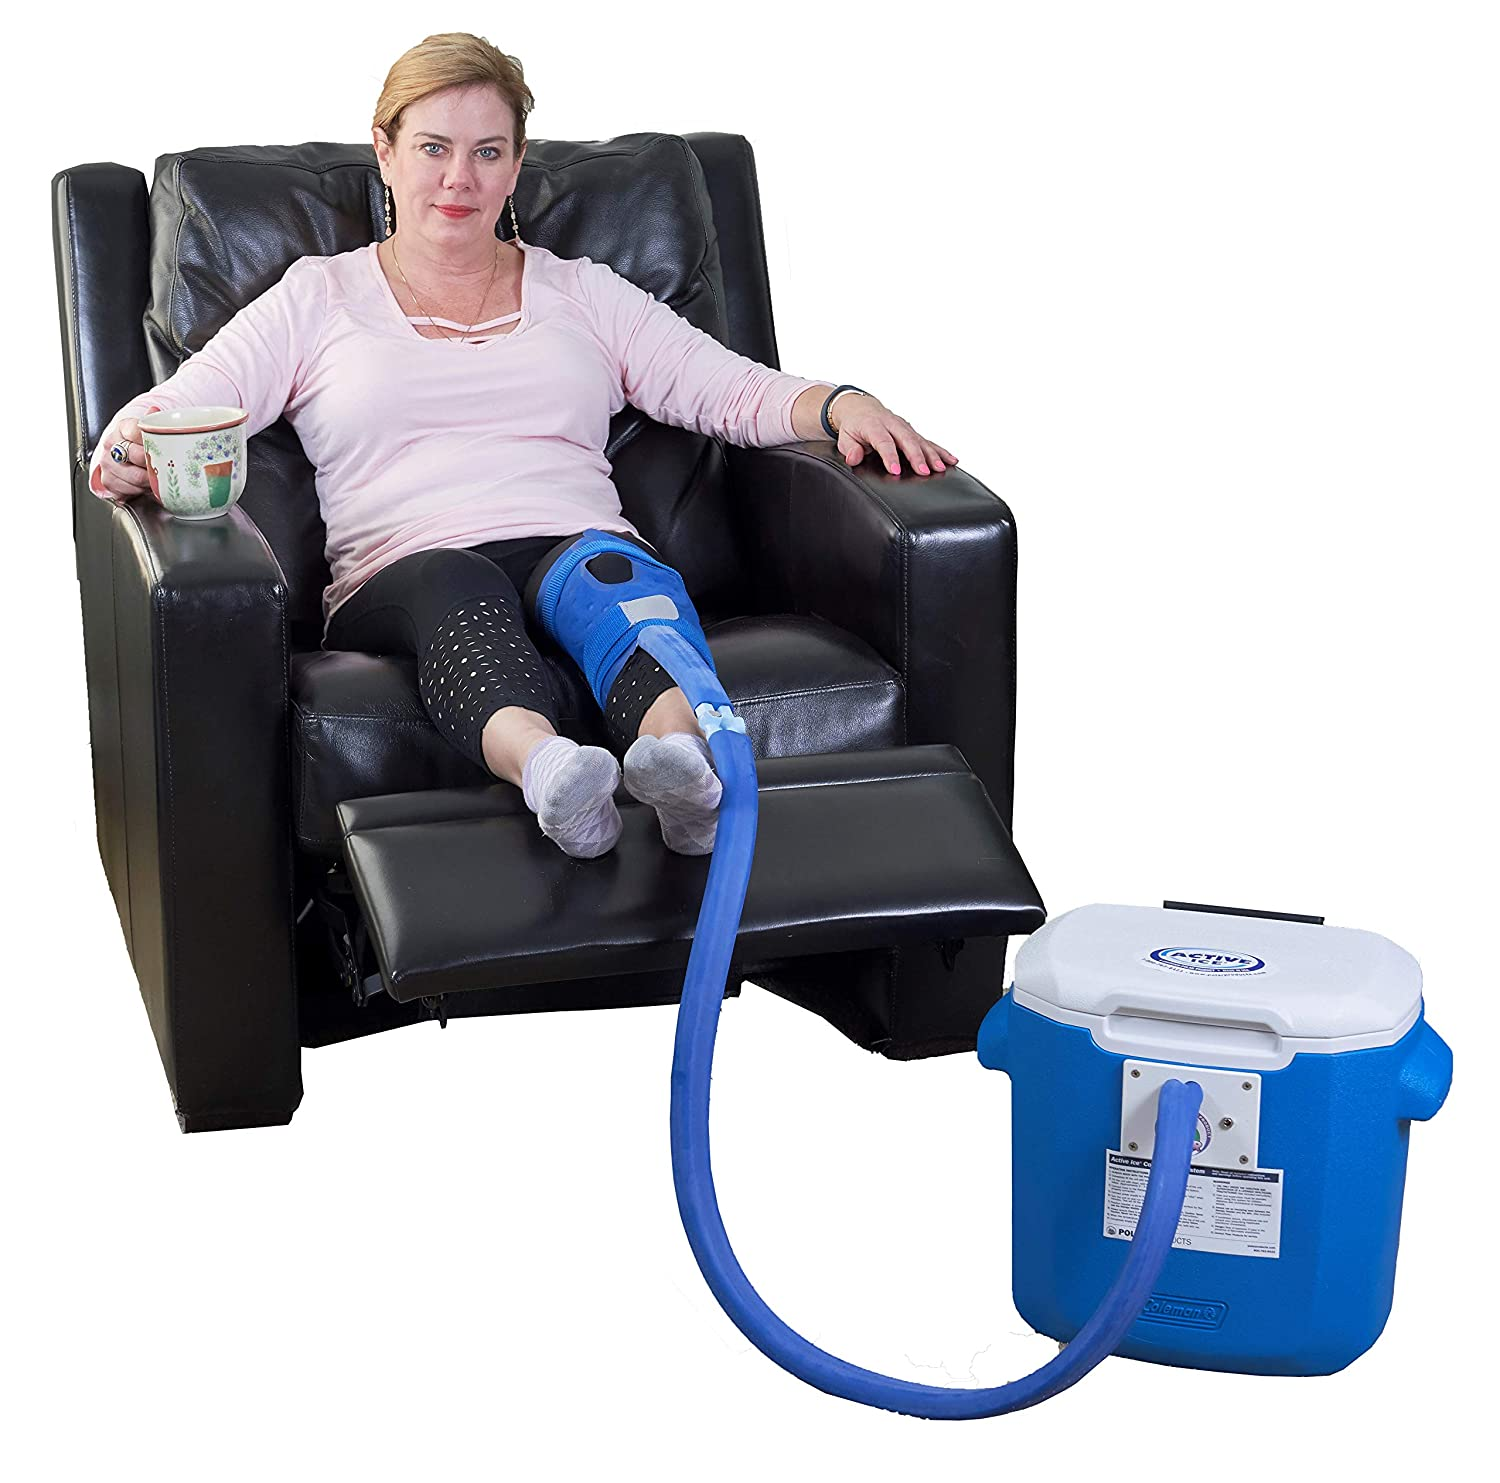 Polar Products Active Ice® 3.0 Knee & Joint Cold Therapy System with Digital Timer Includes Knee Bladder 15 Quart Cooler